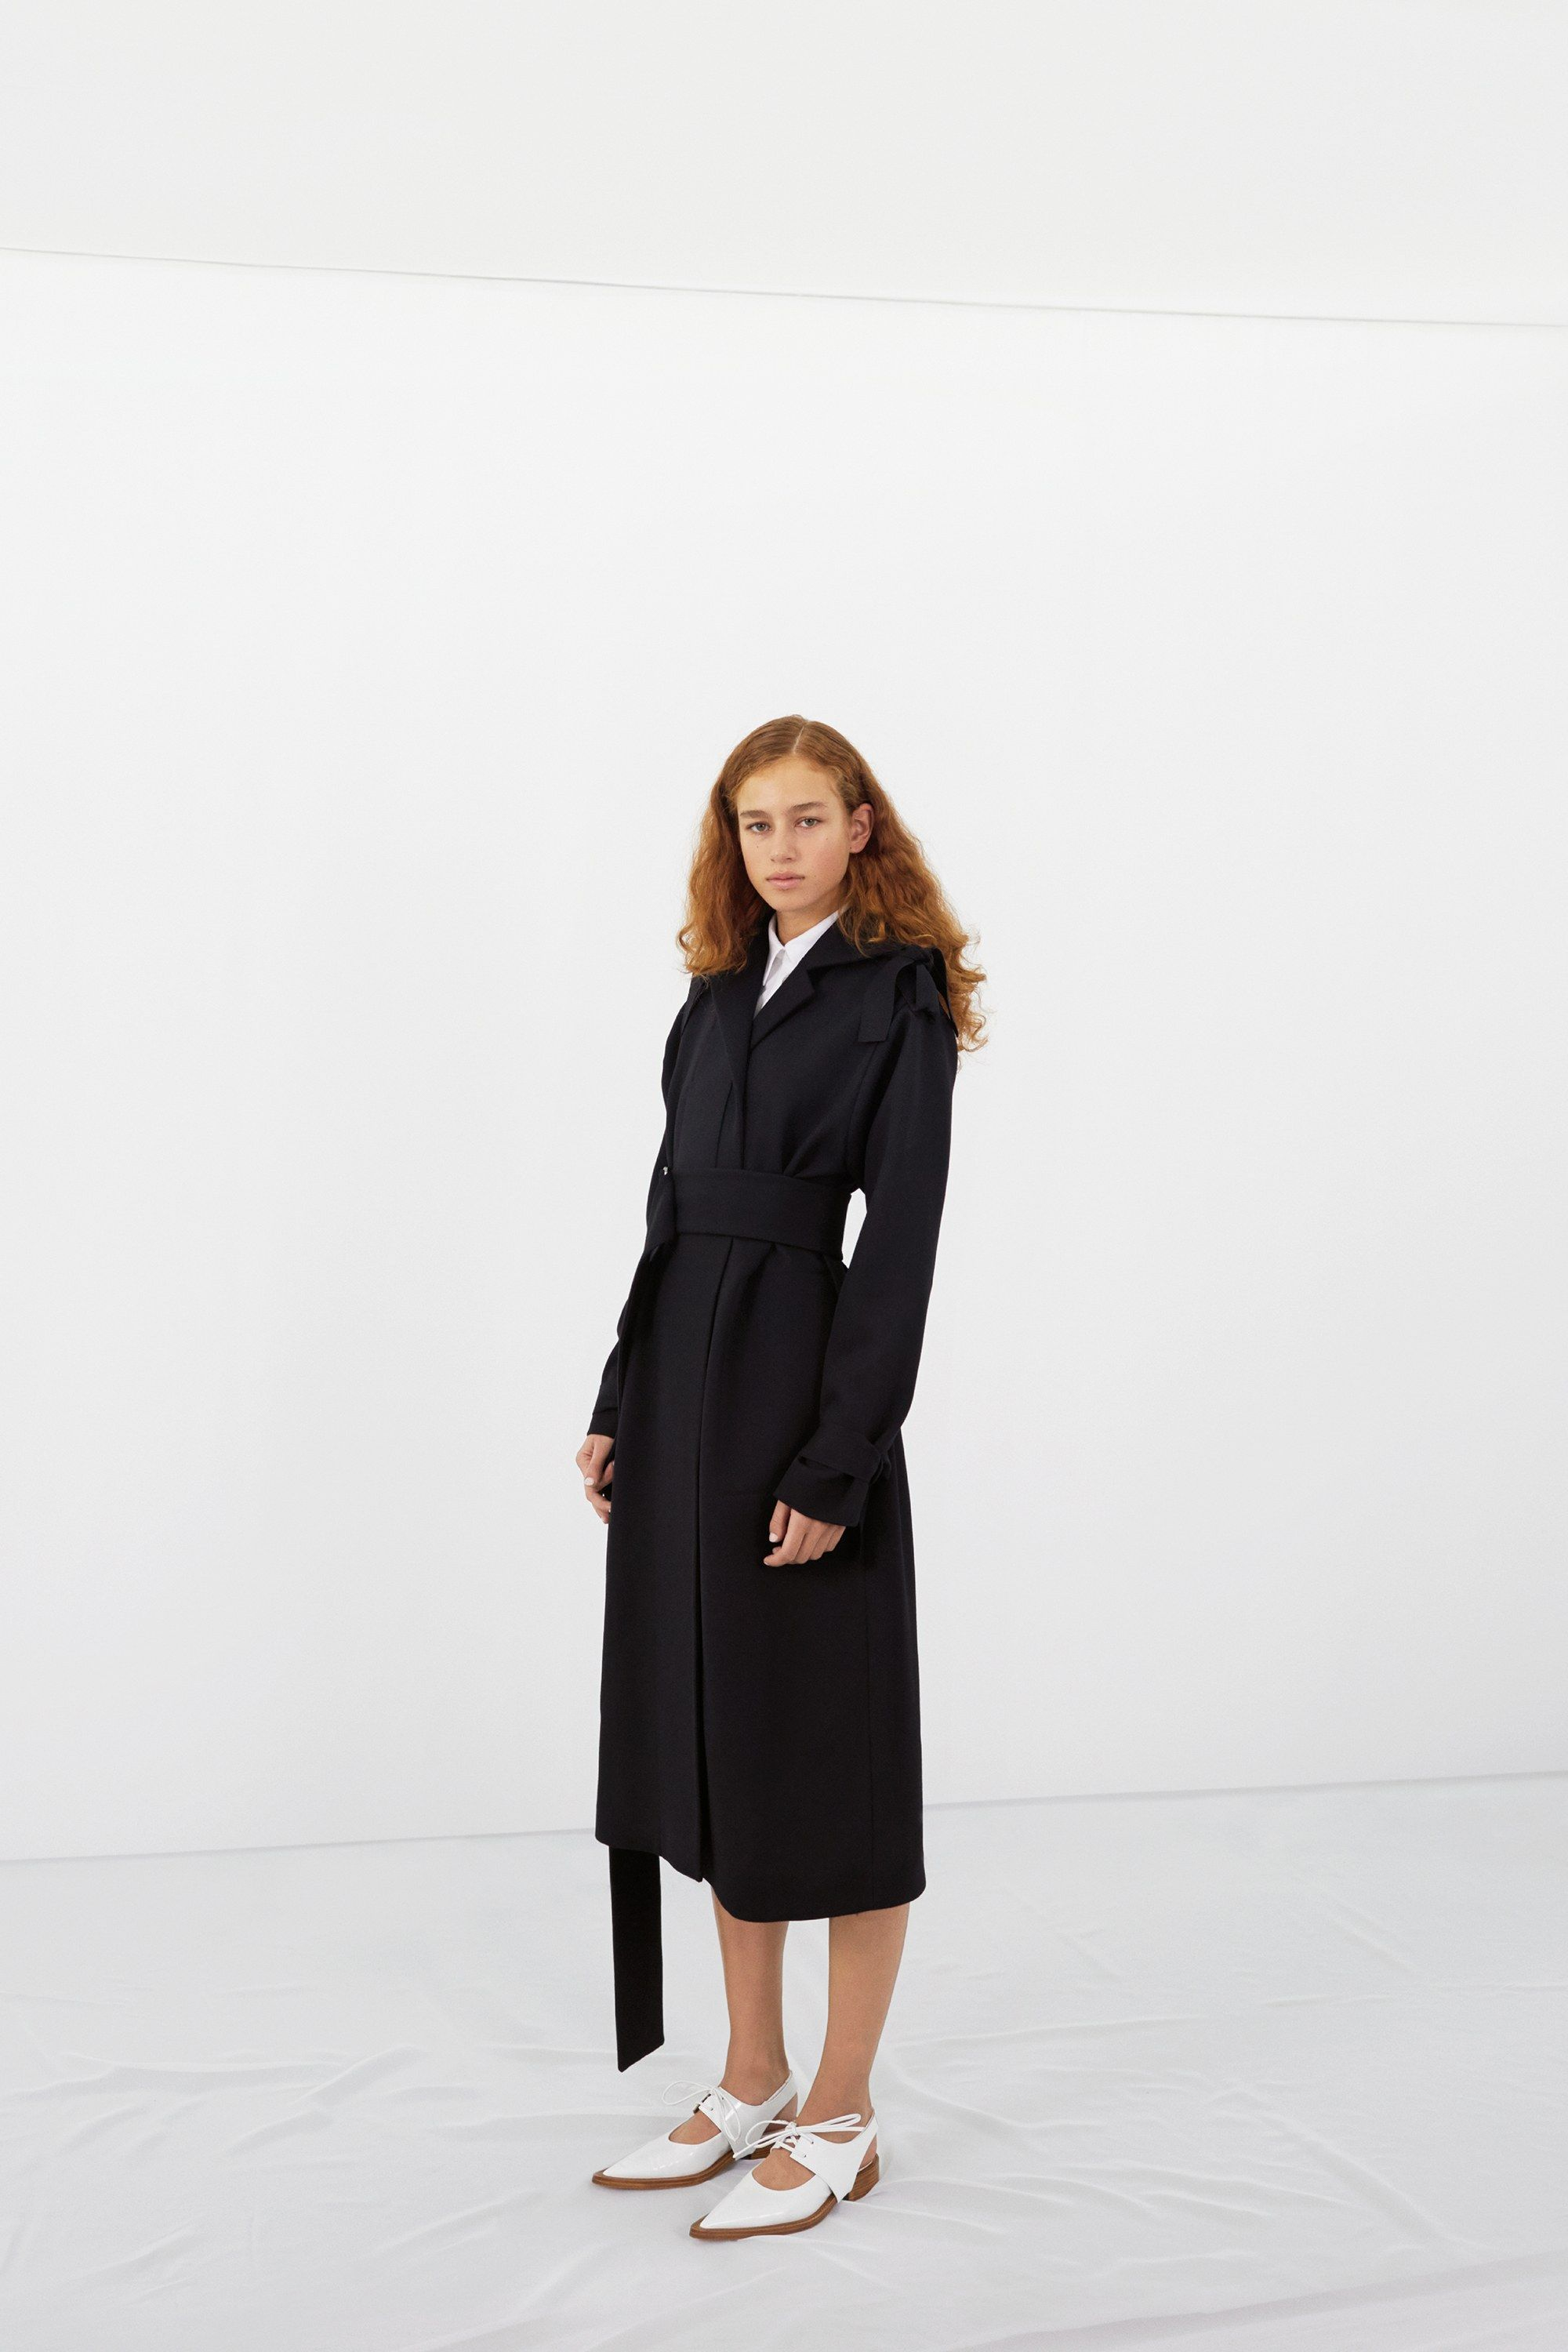 Victoria Beckham Pre-Fall 2016 Fashion Show